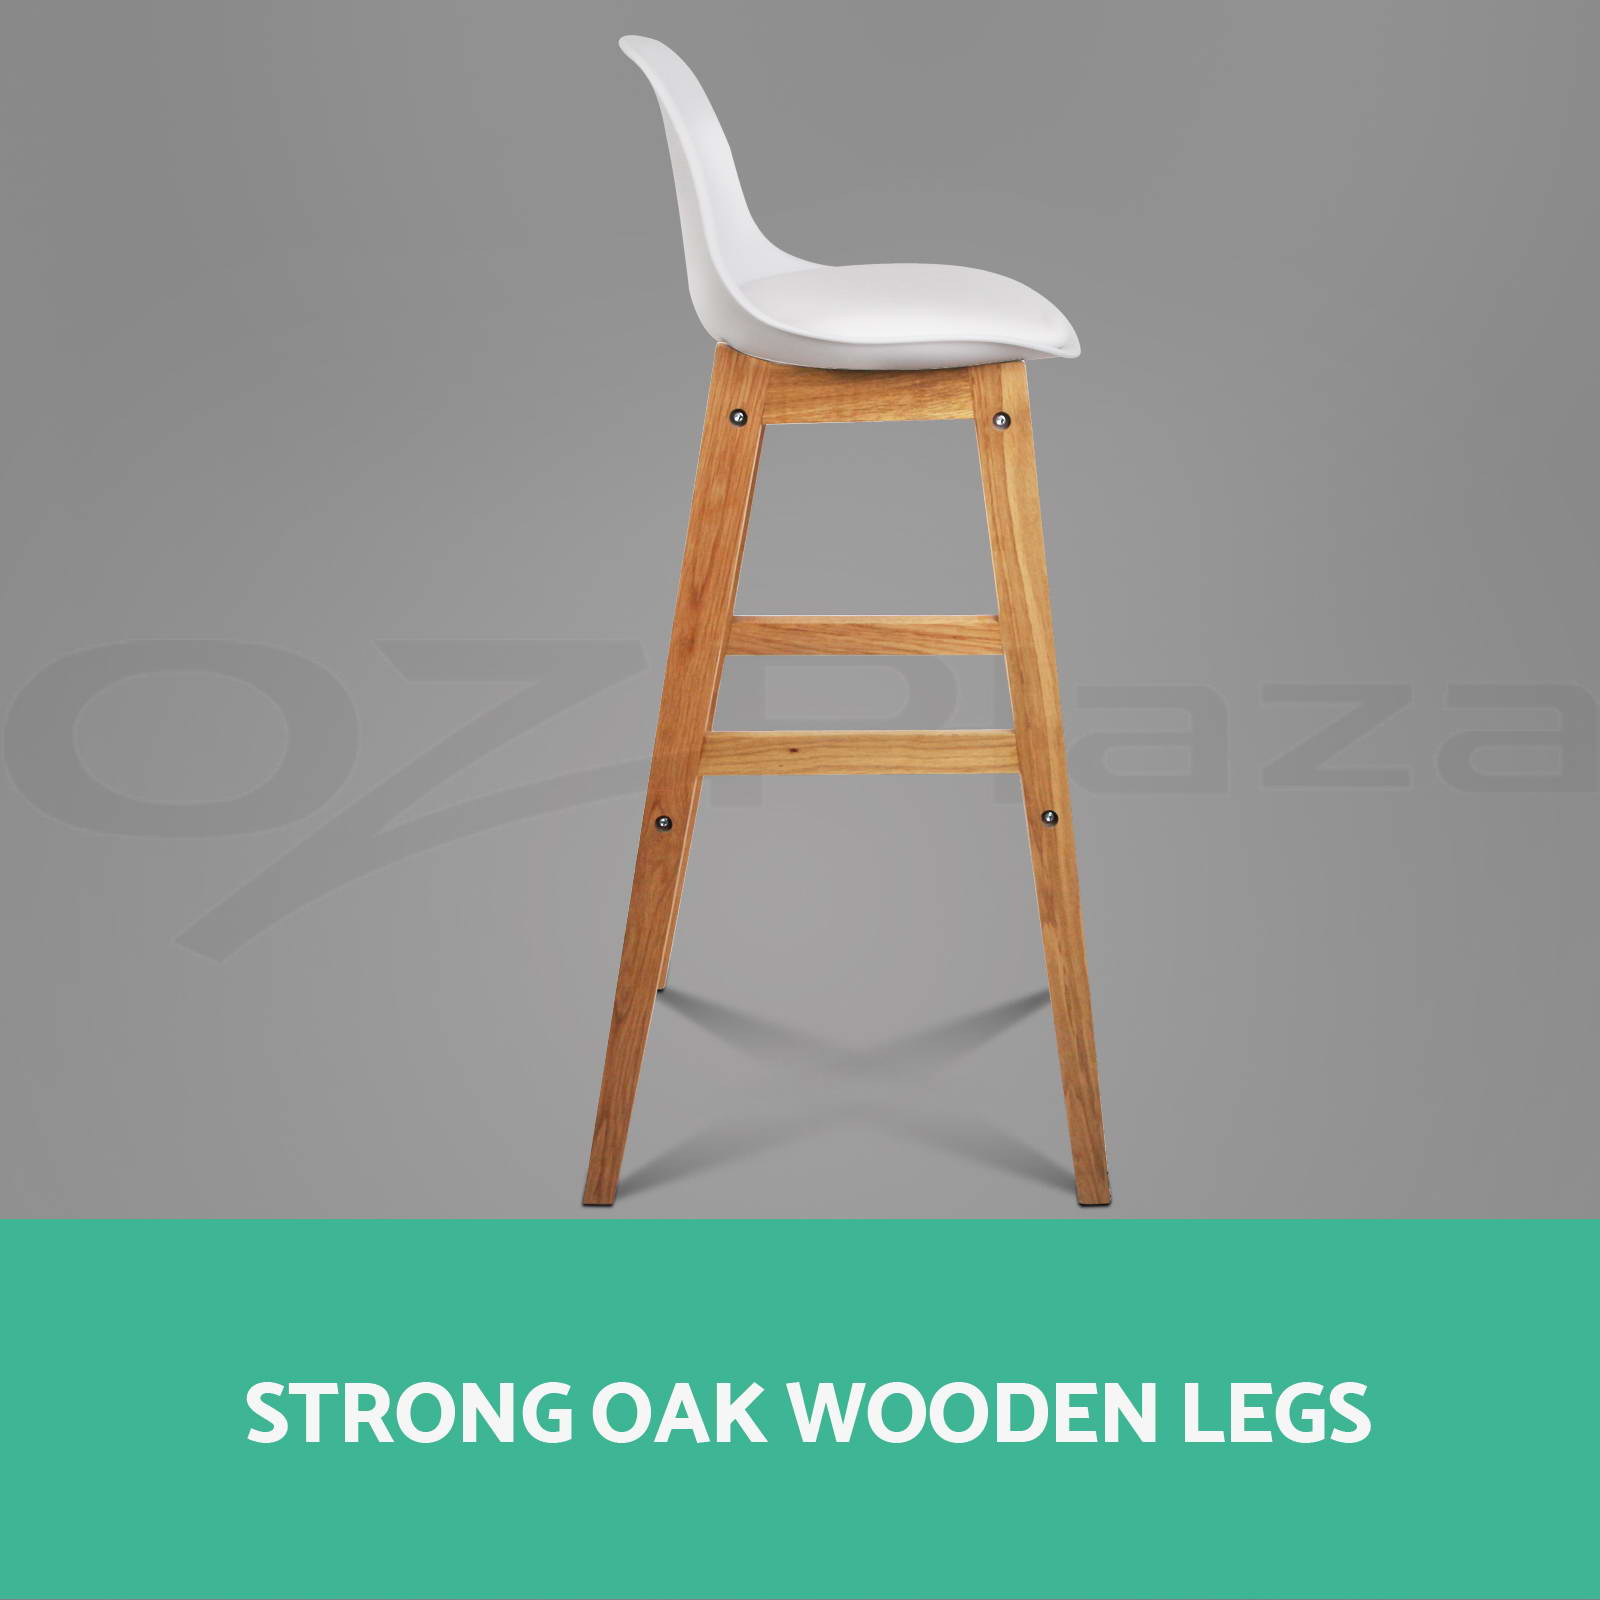 4x Oak Wood Bar Stools Wooden Barstool Dining Chairs  : BA F 3601 WHX4 P05 from www.ebay.com.au size 1600 x 1600 jpeg 112kB